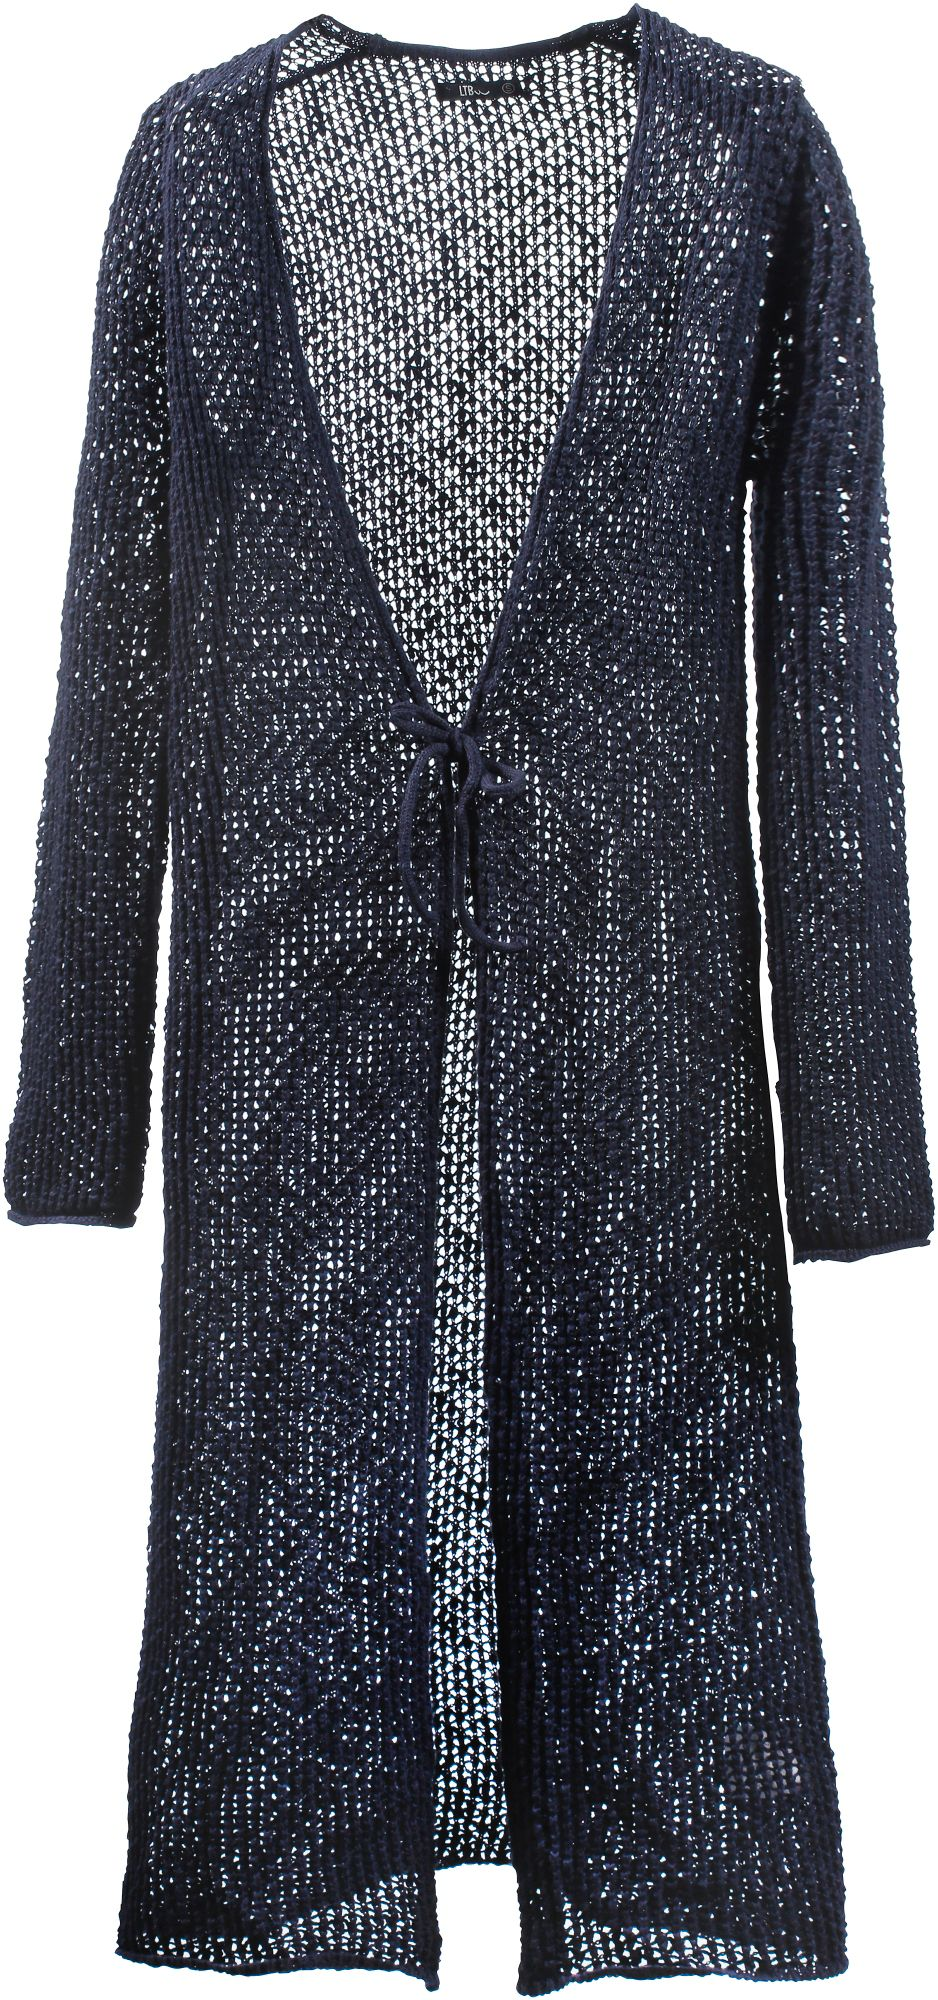 LTB Strickjacke Damen in blau, Größe S